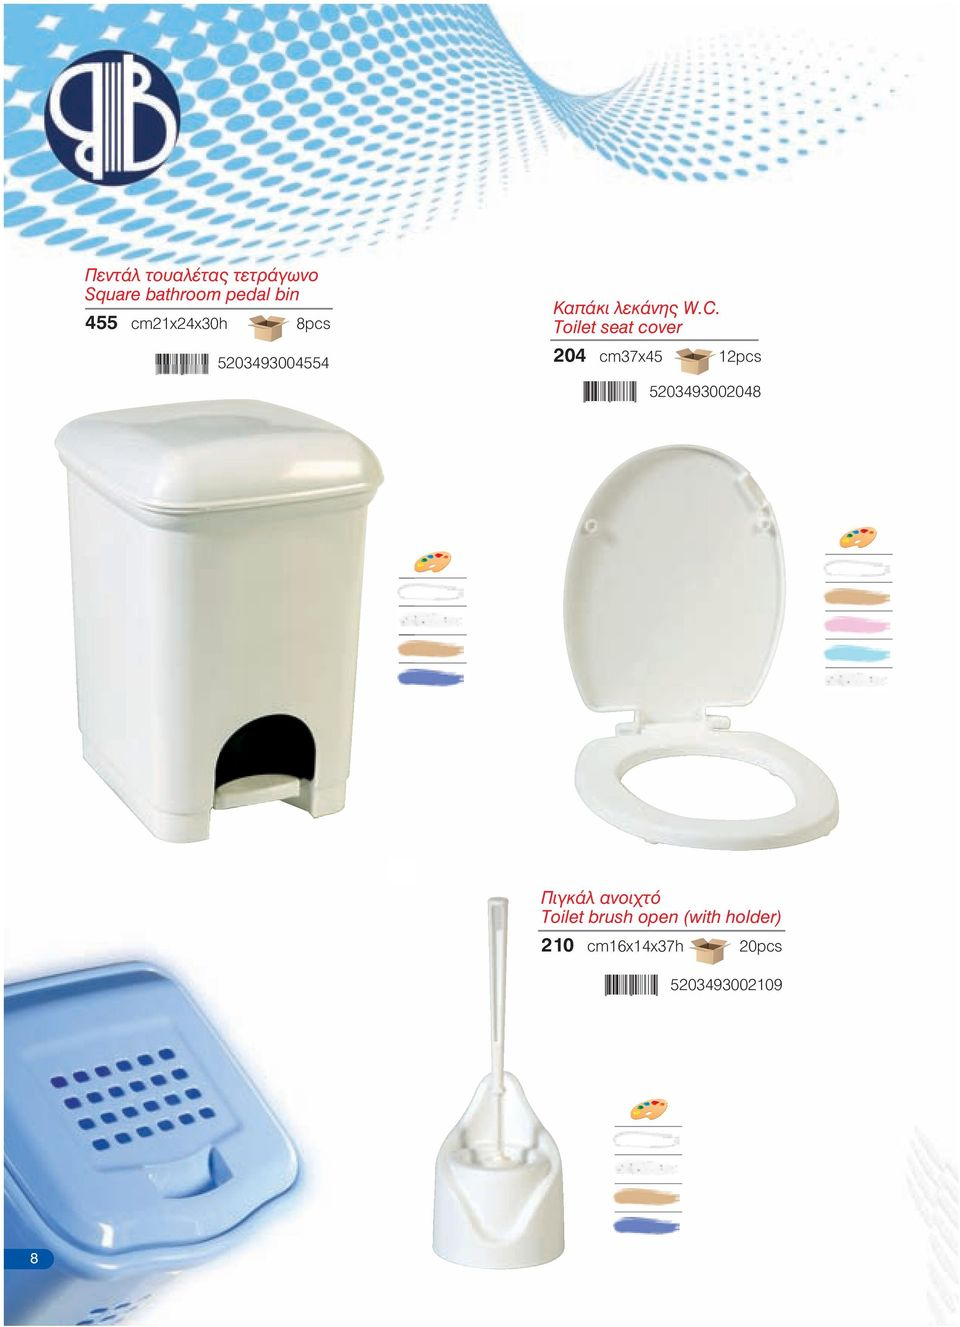 Toilet seat cover 204 cm37x45 12pcs 5203493002048 Πιγκάλ